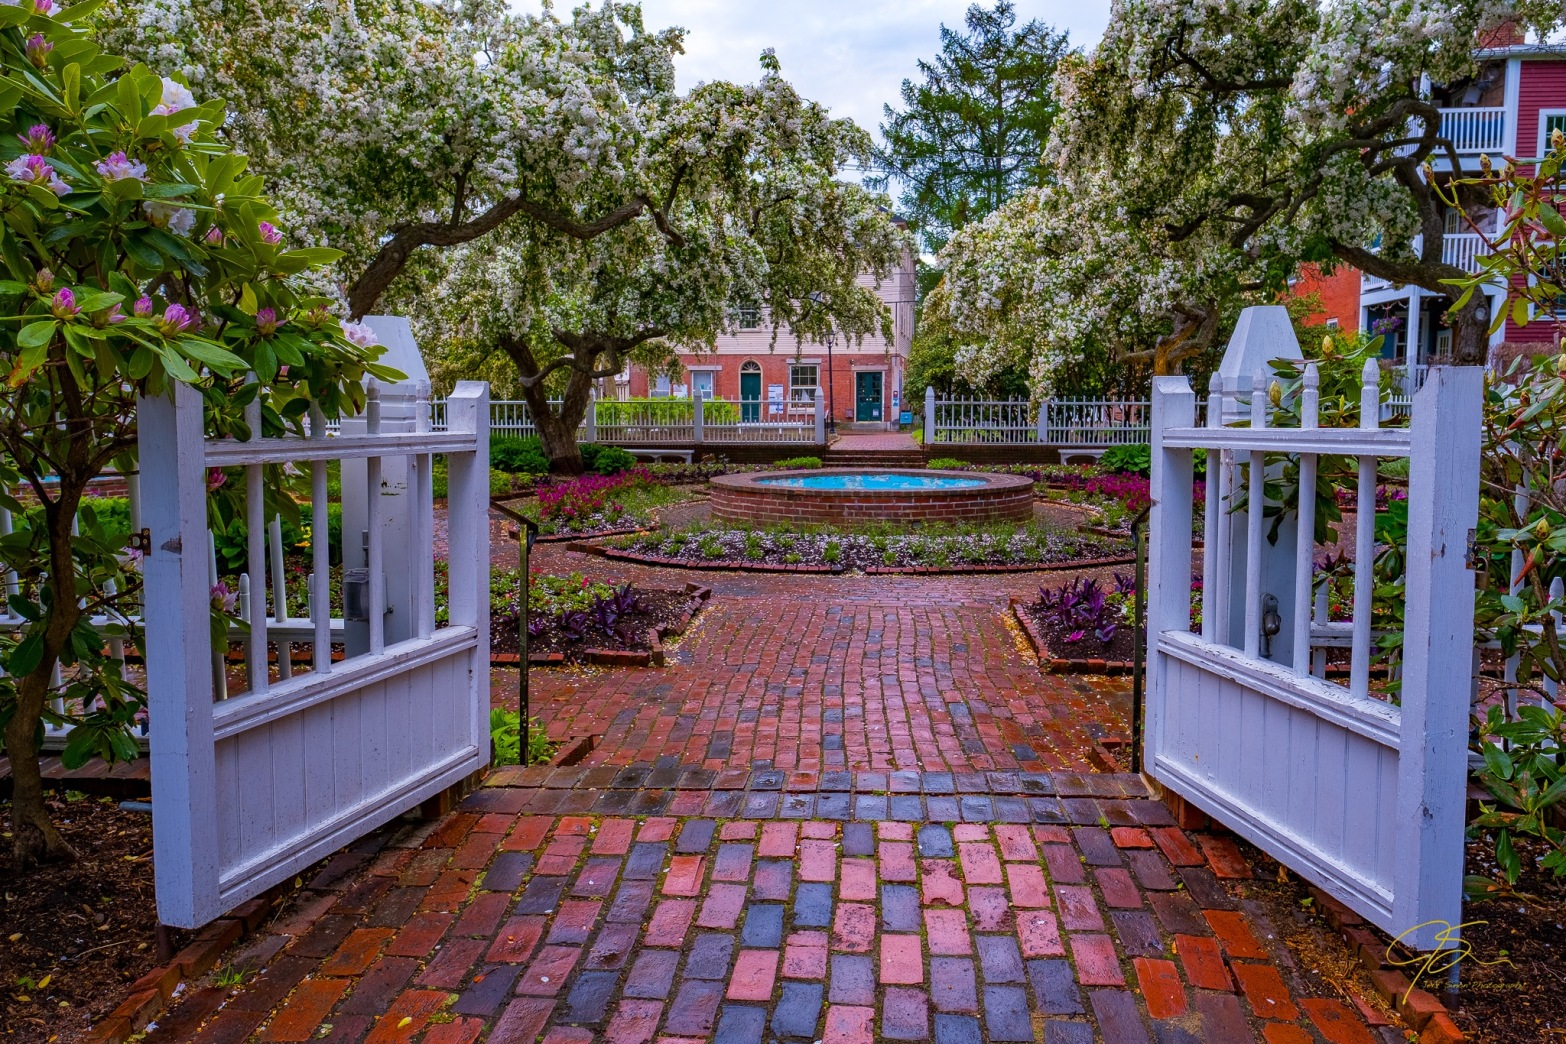 white gate into the garden, brick paths, cherry blossoms, and fountains